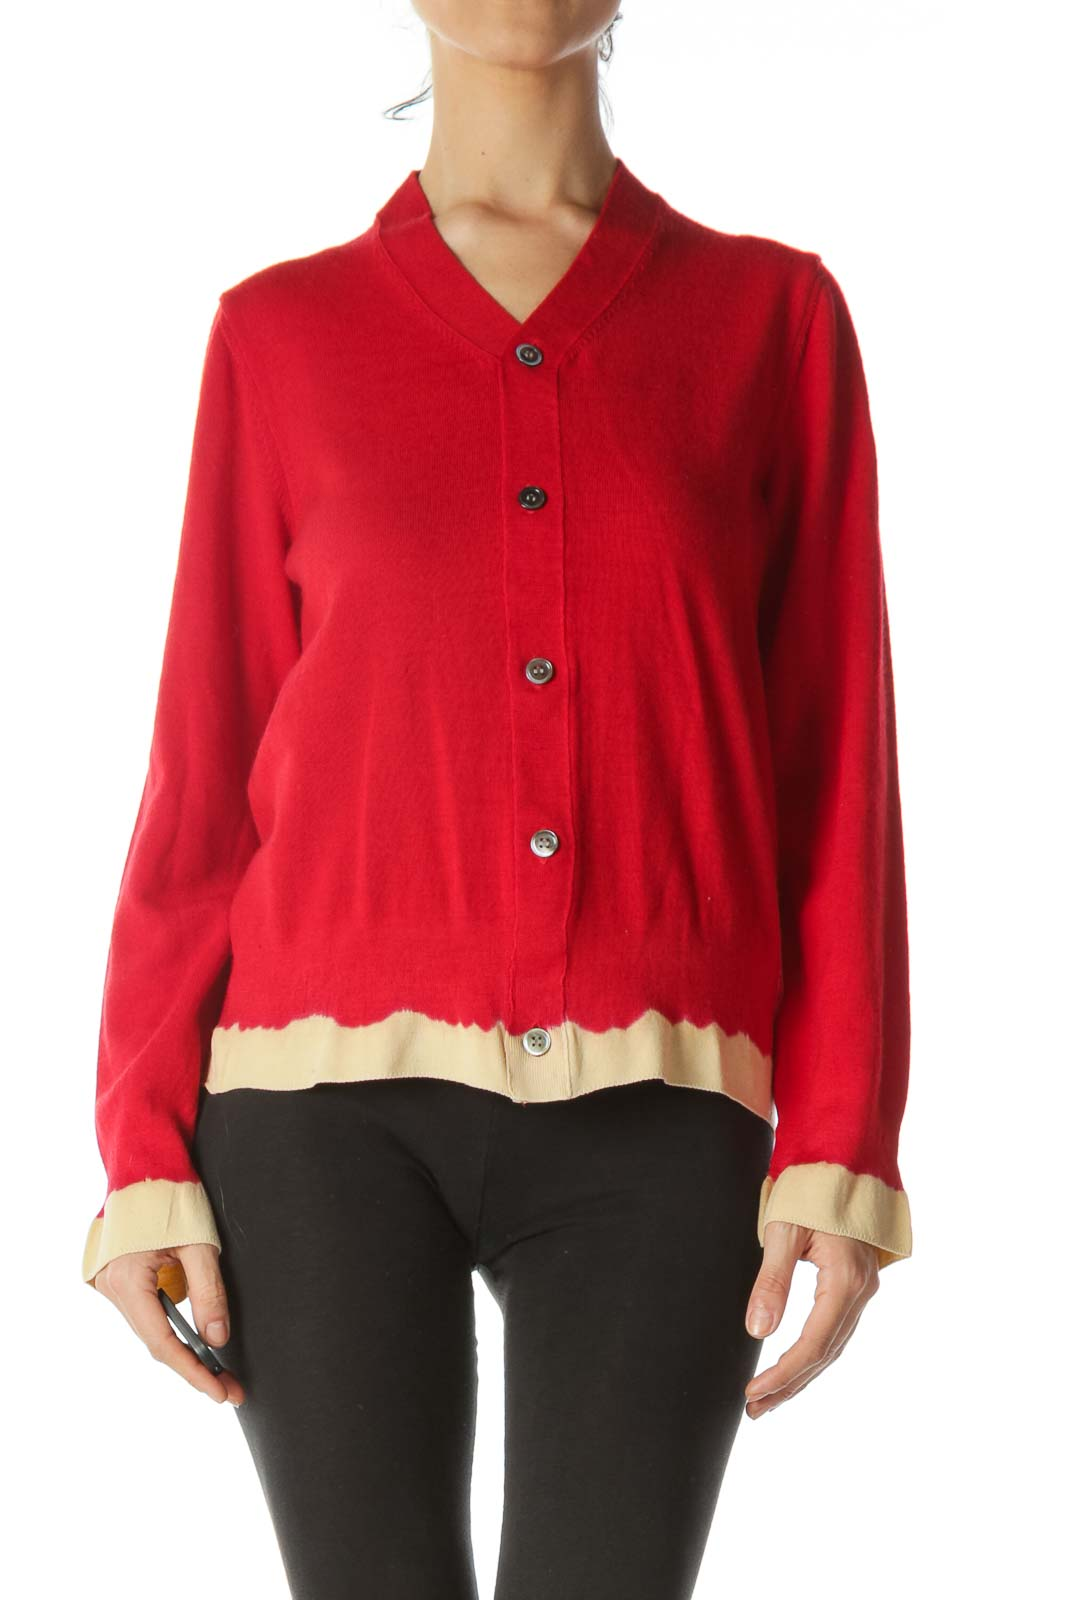 Red Beige-Sleeves Designer Buttoned Sweater - Small Hole in Fabric